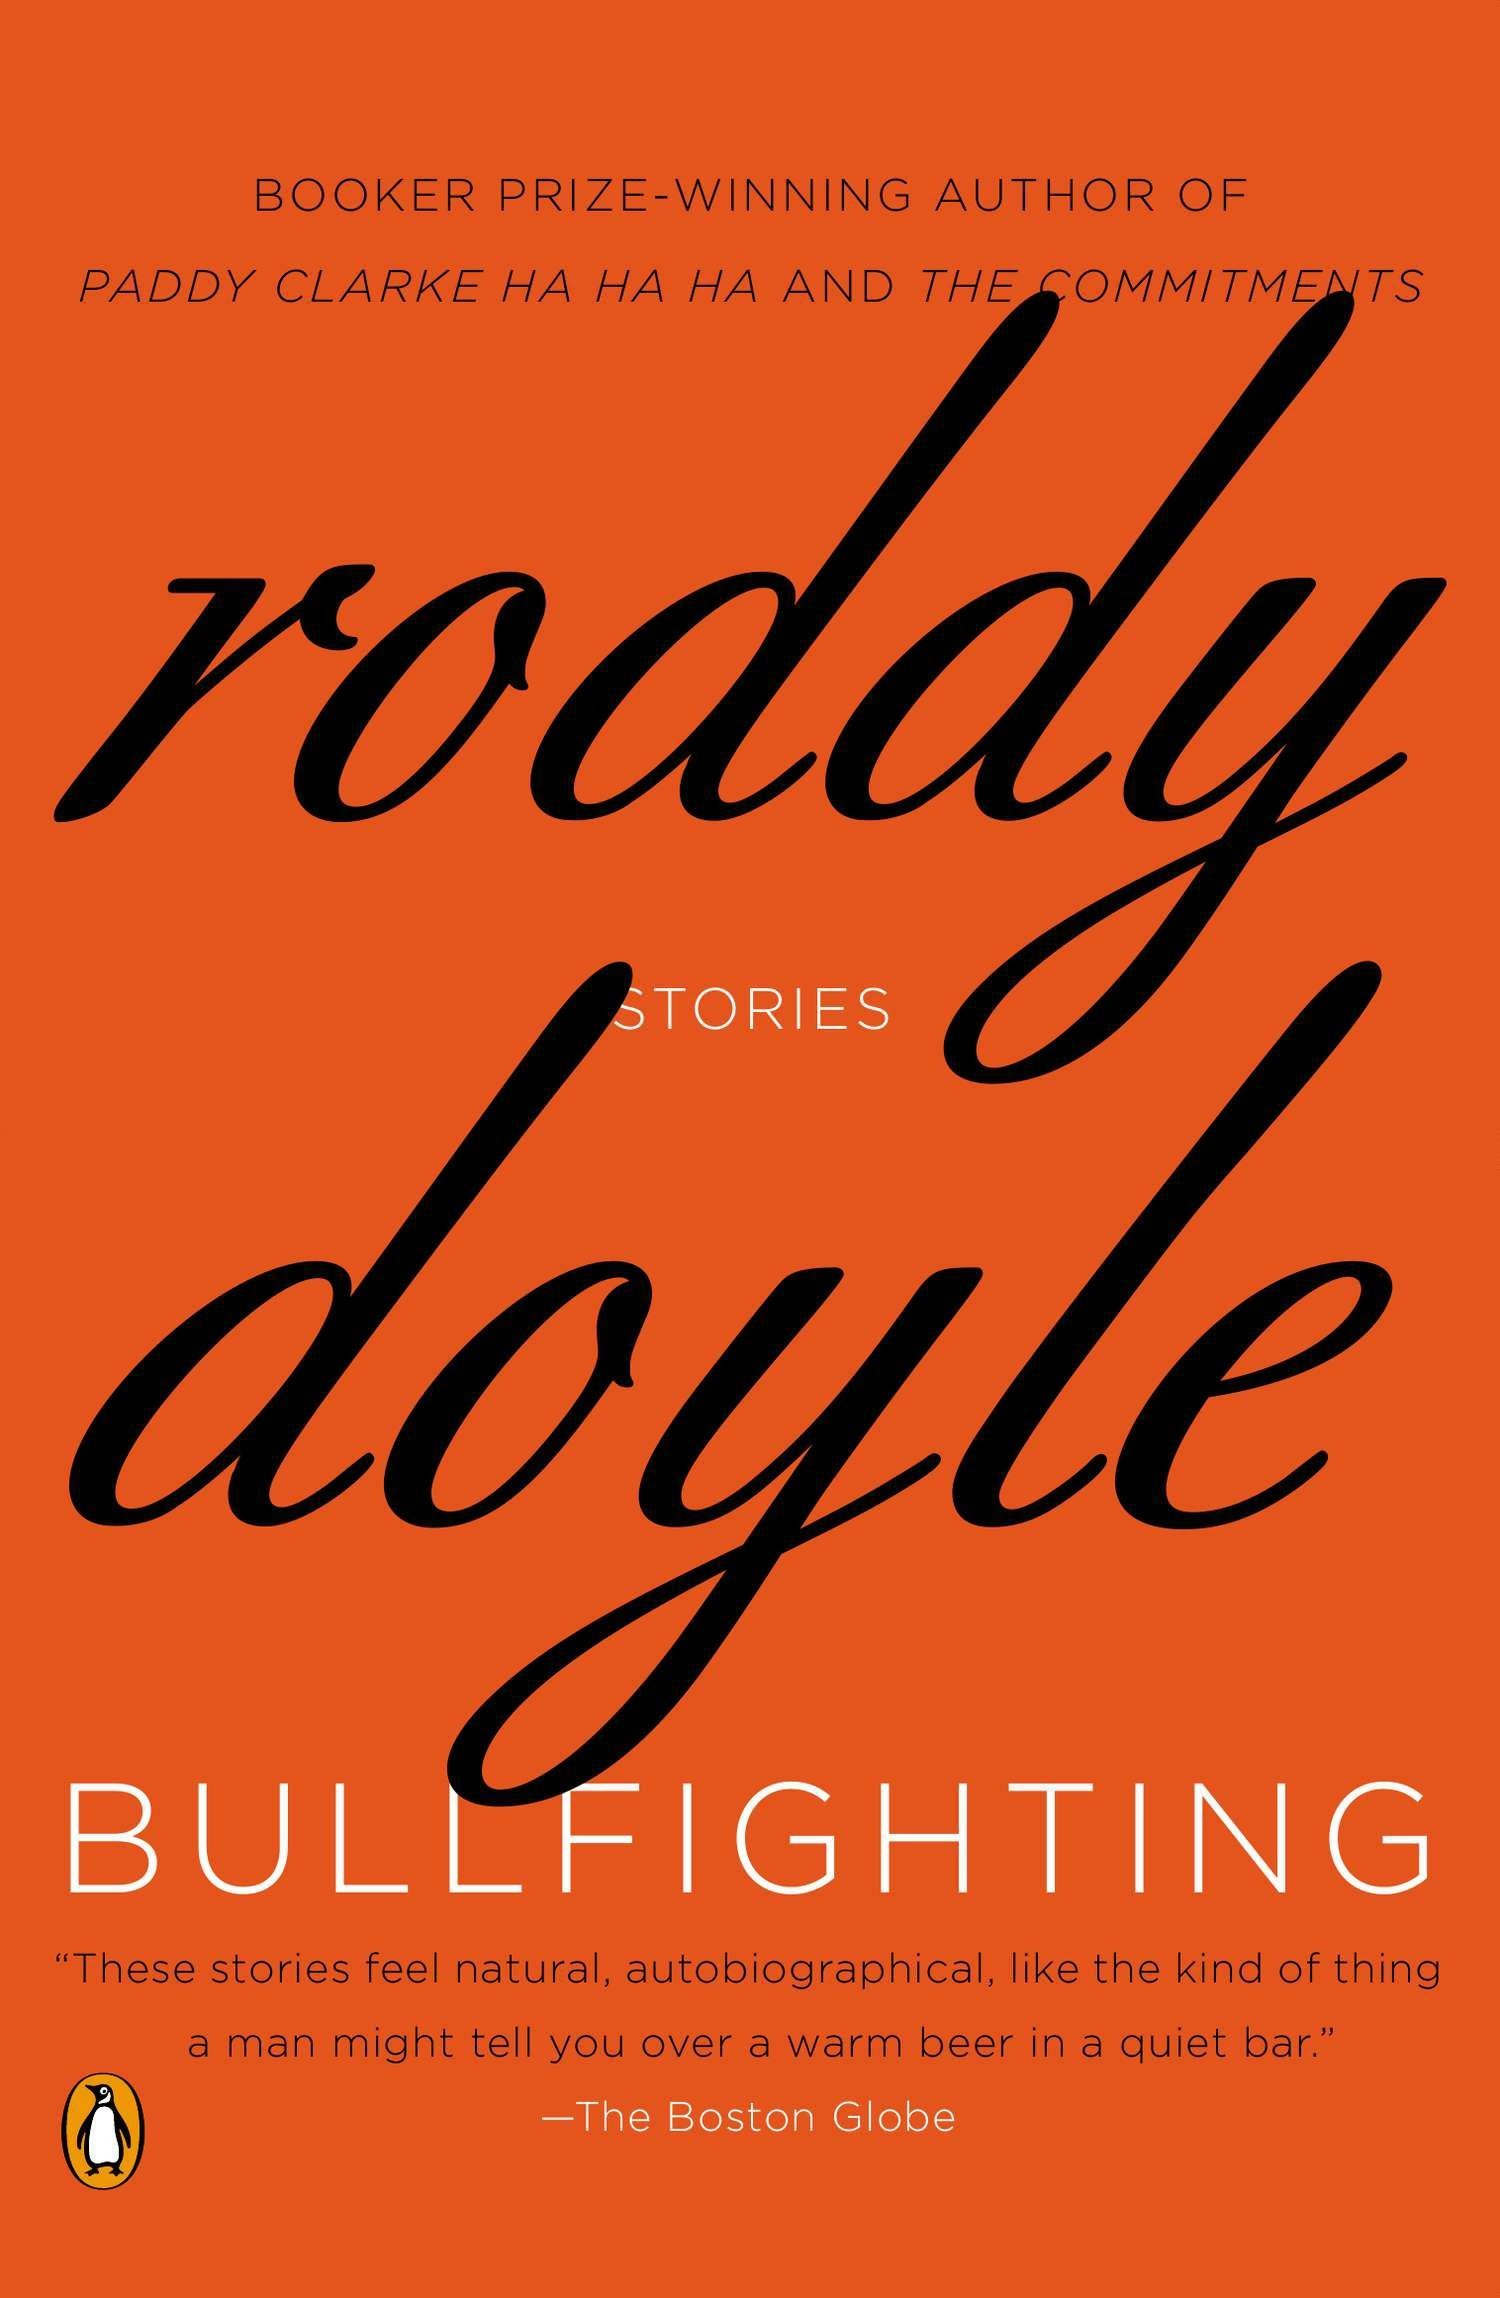 Image result for bullfighting roddy doyle